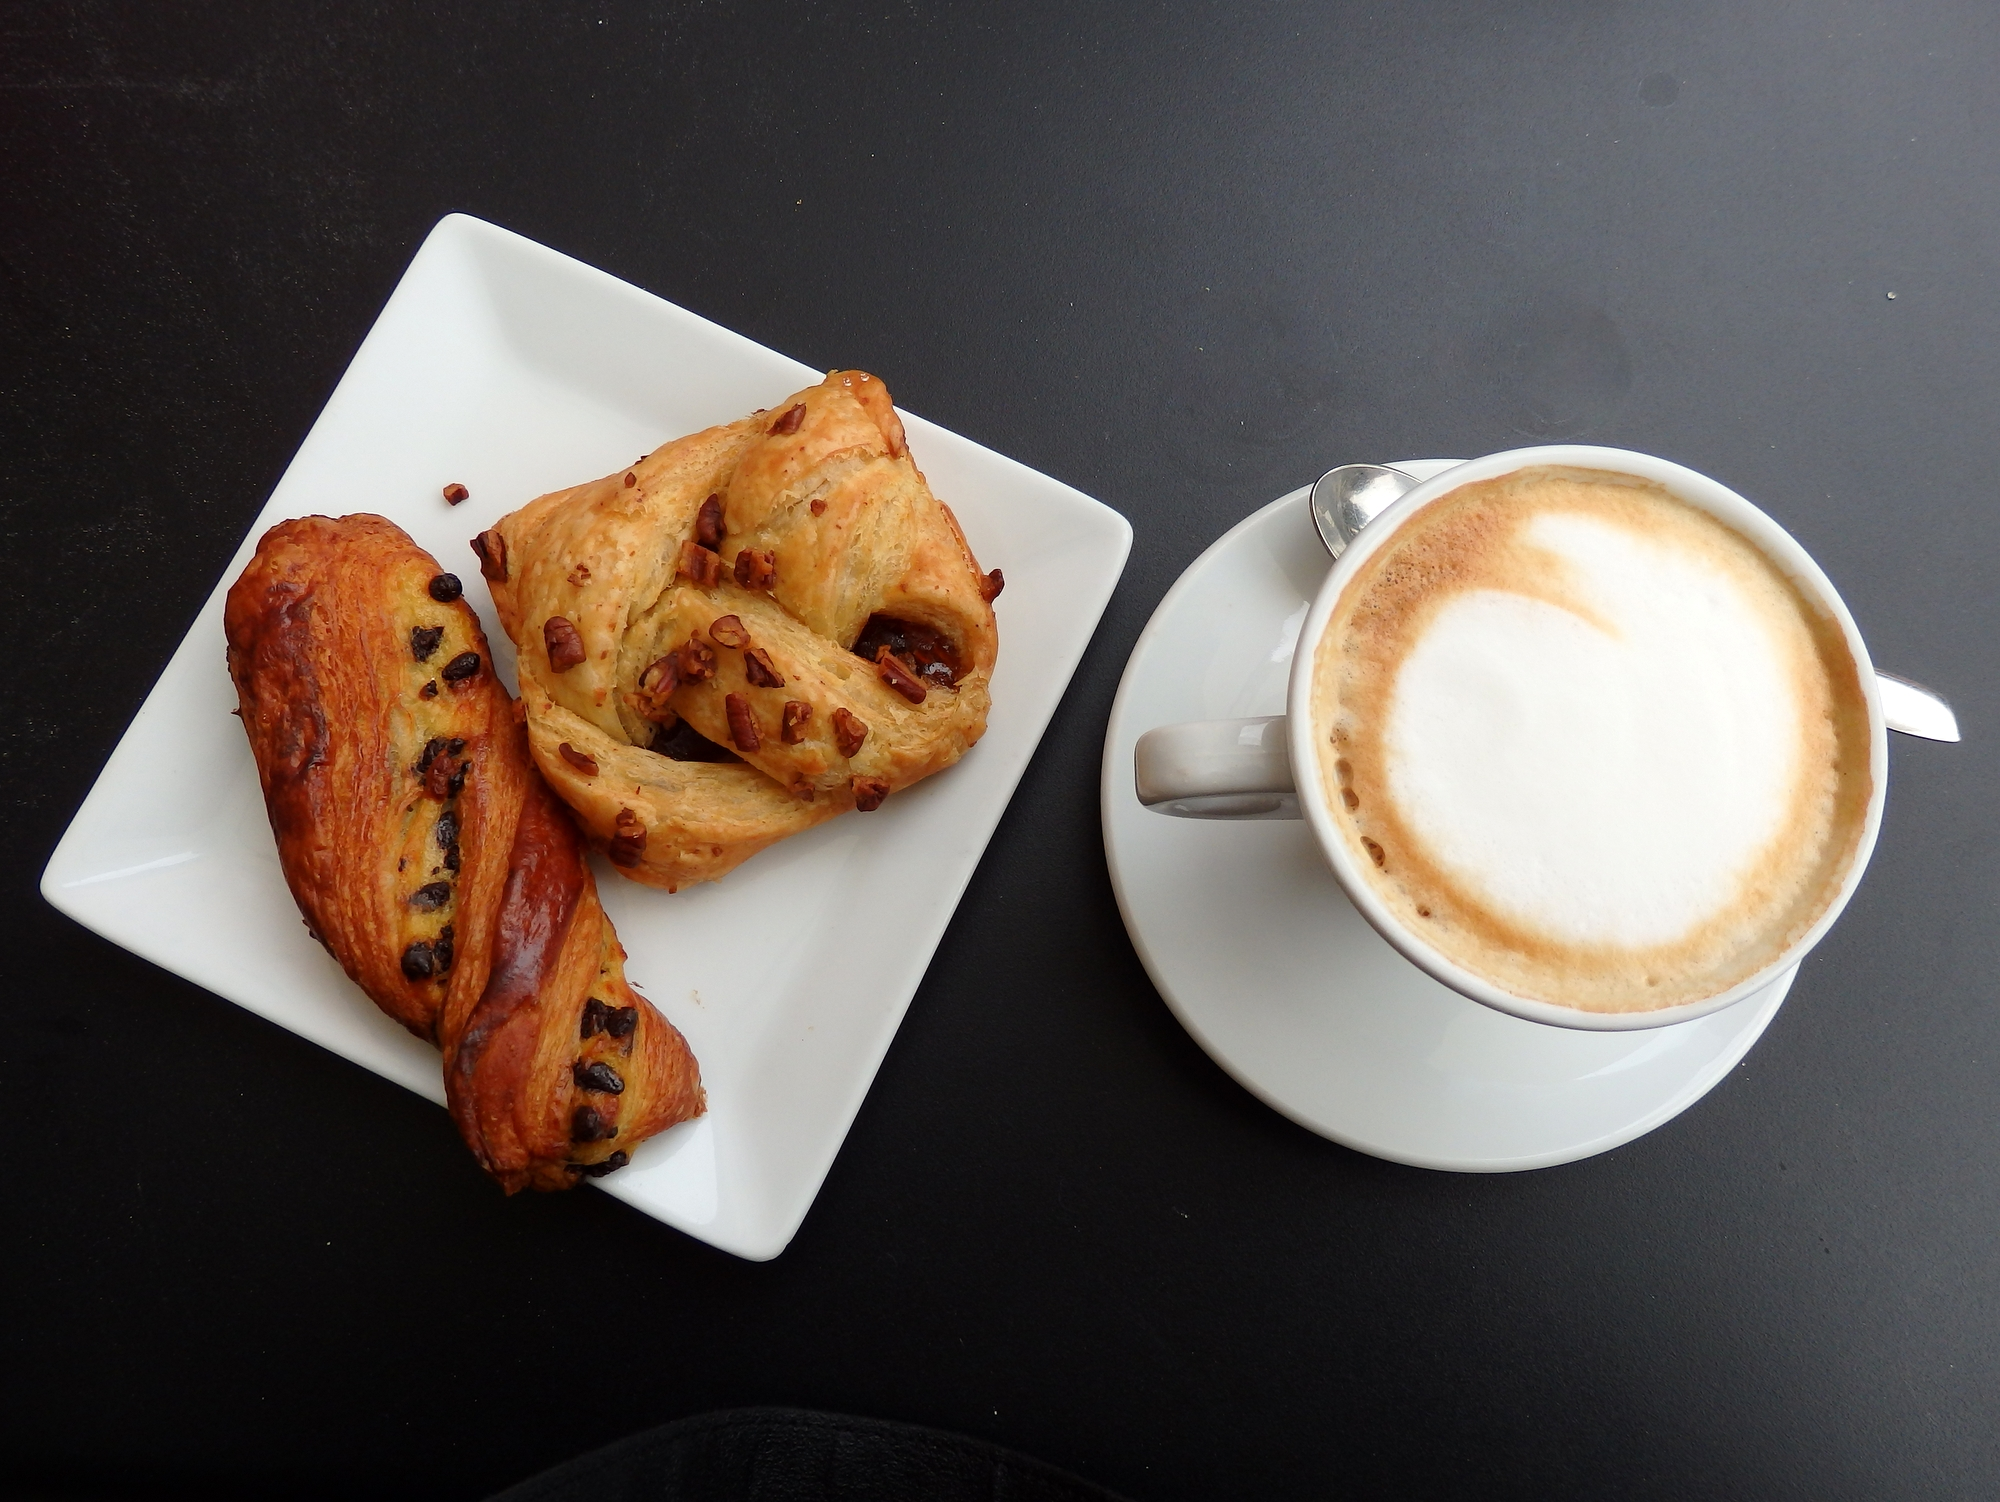 Italian breakfast including cappuccino and pastries in Milan, Italy